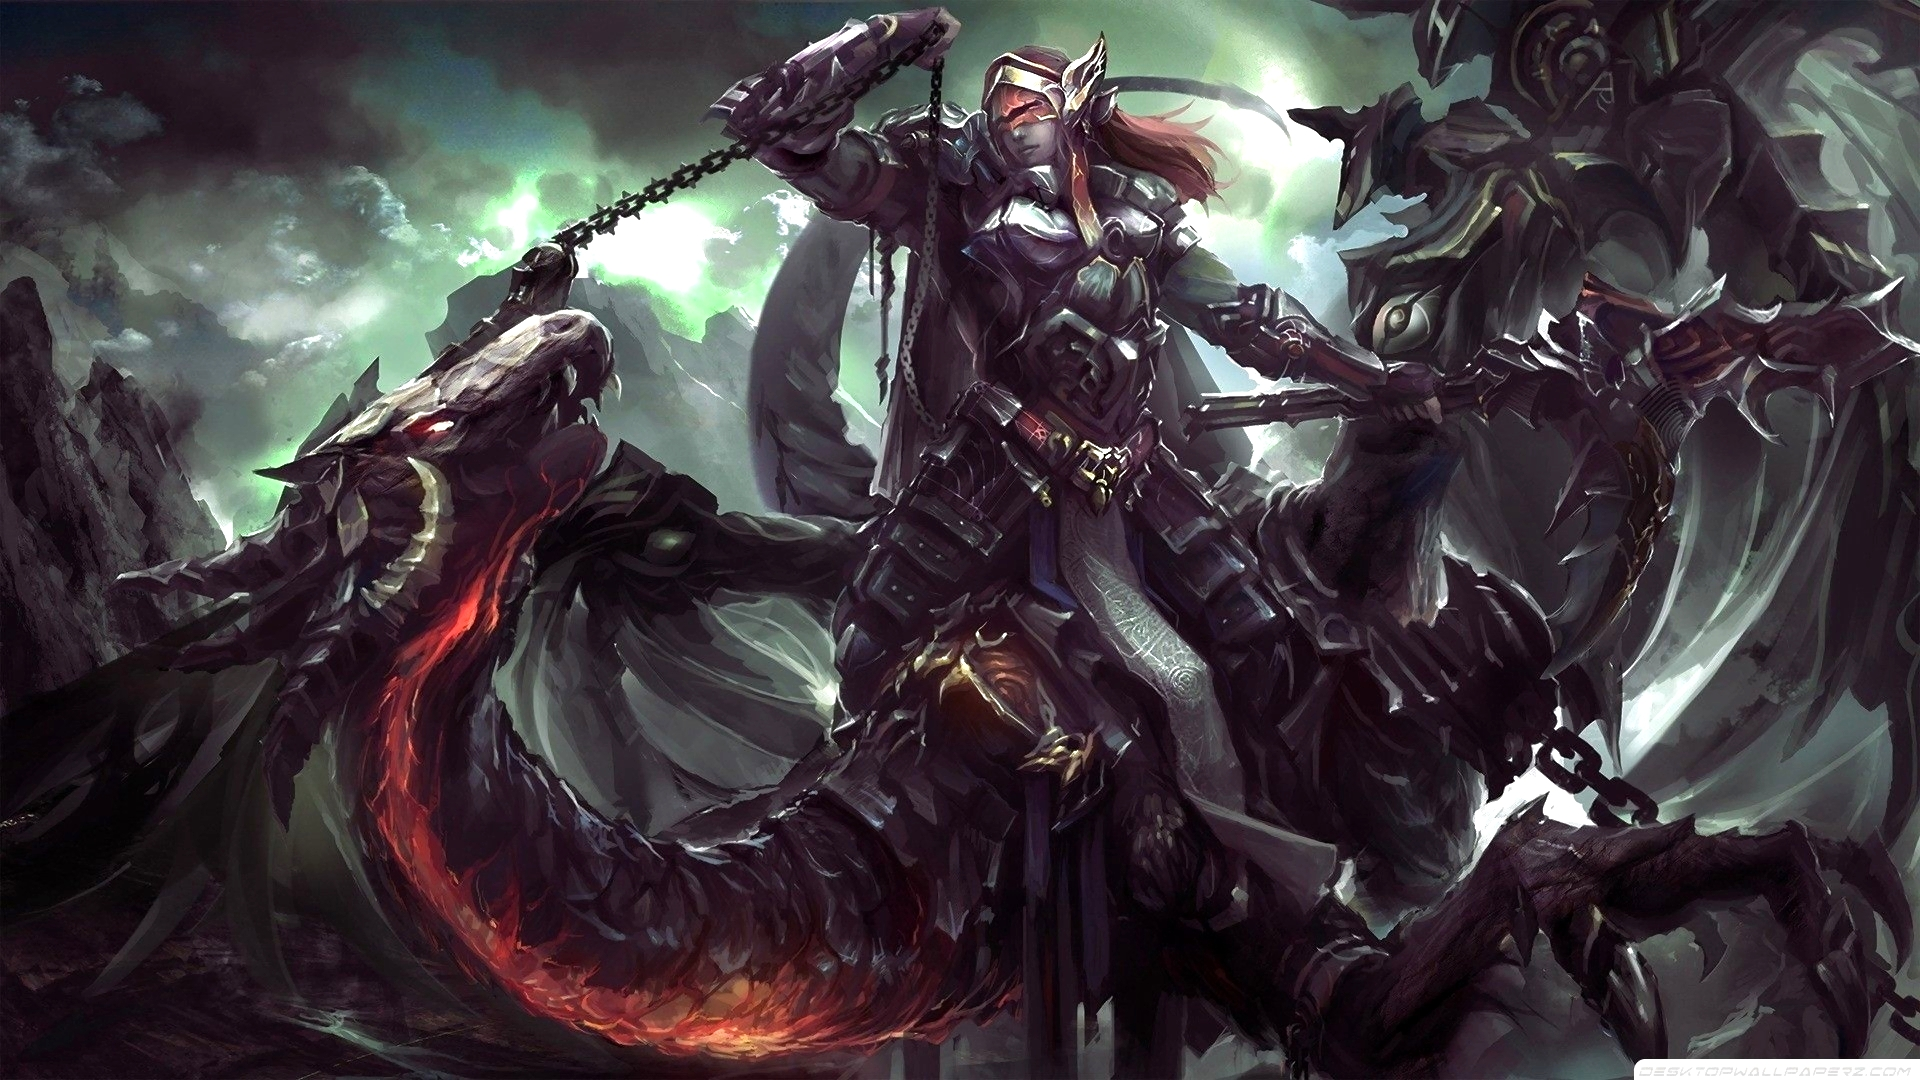 Dark Dragon Knight Wallpaper